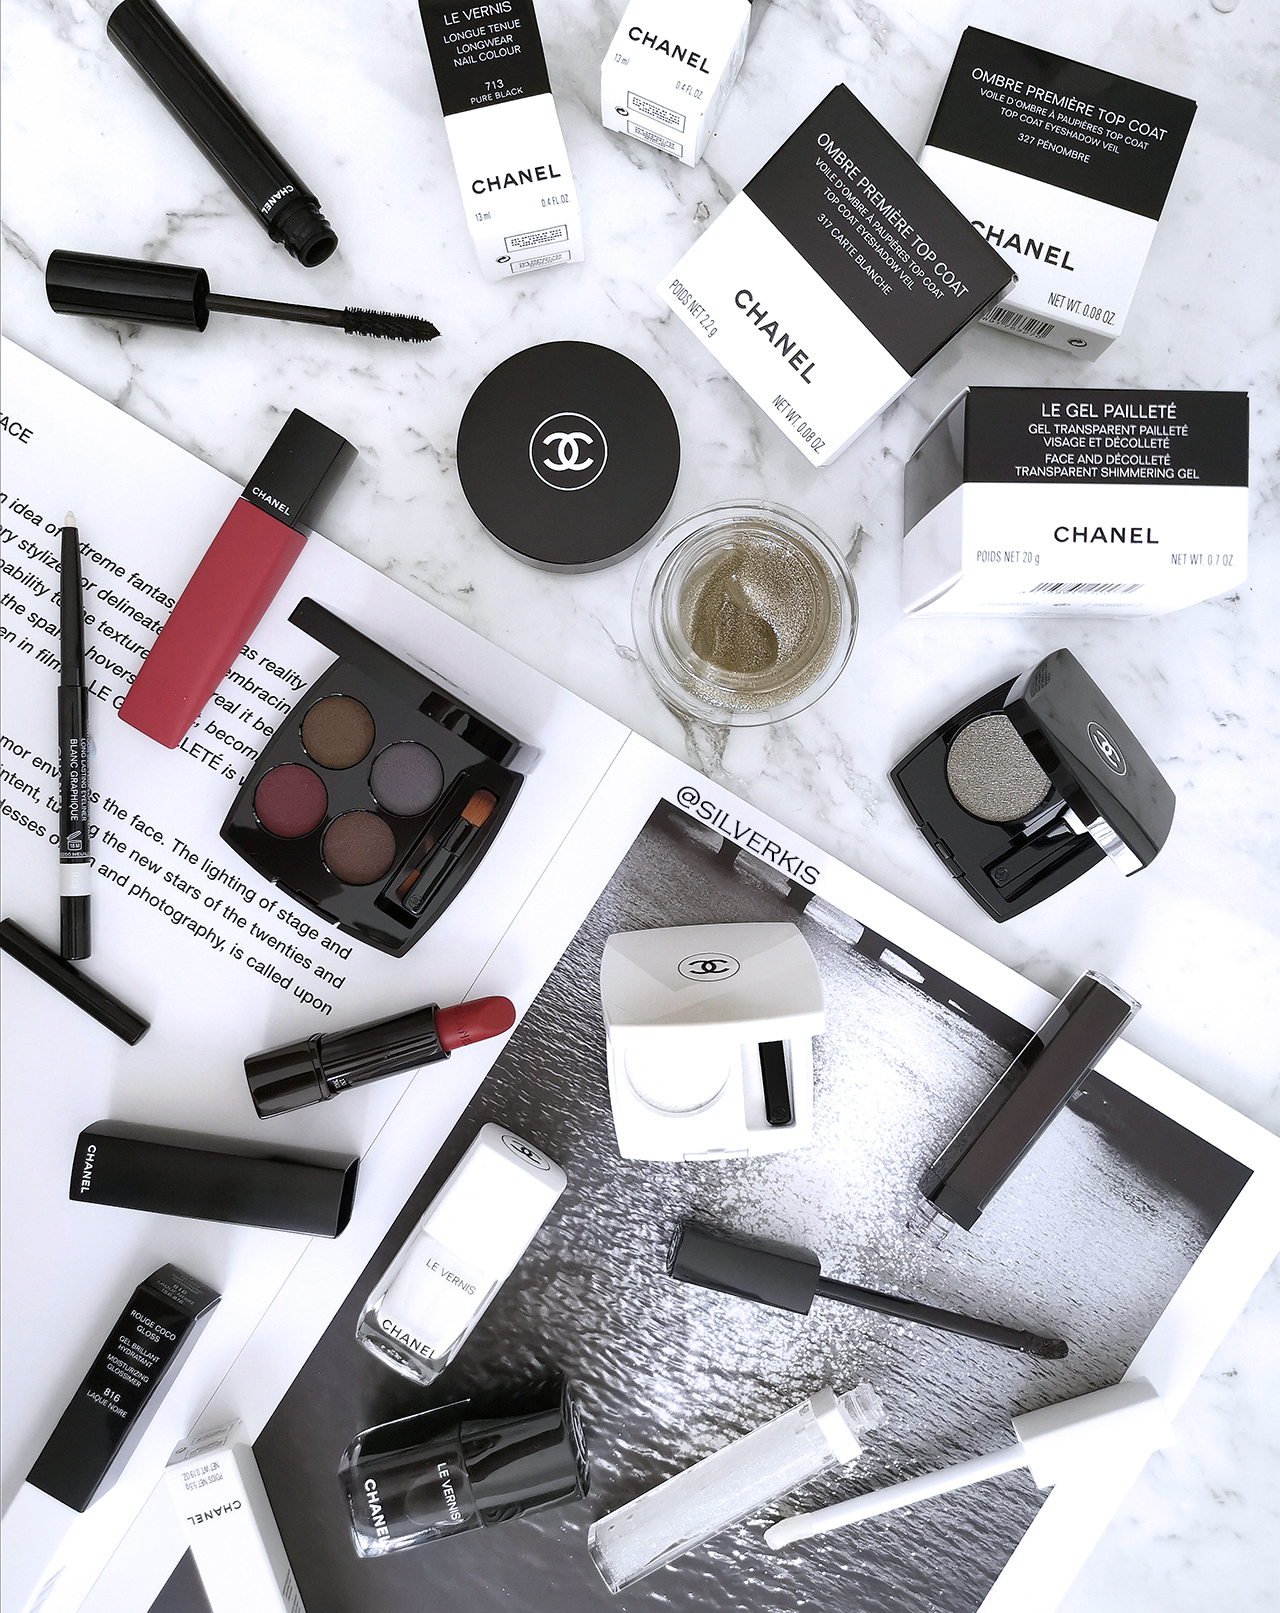 Chanel Noir et Blanc collection